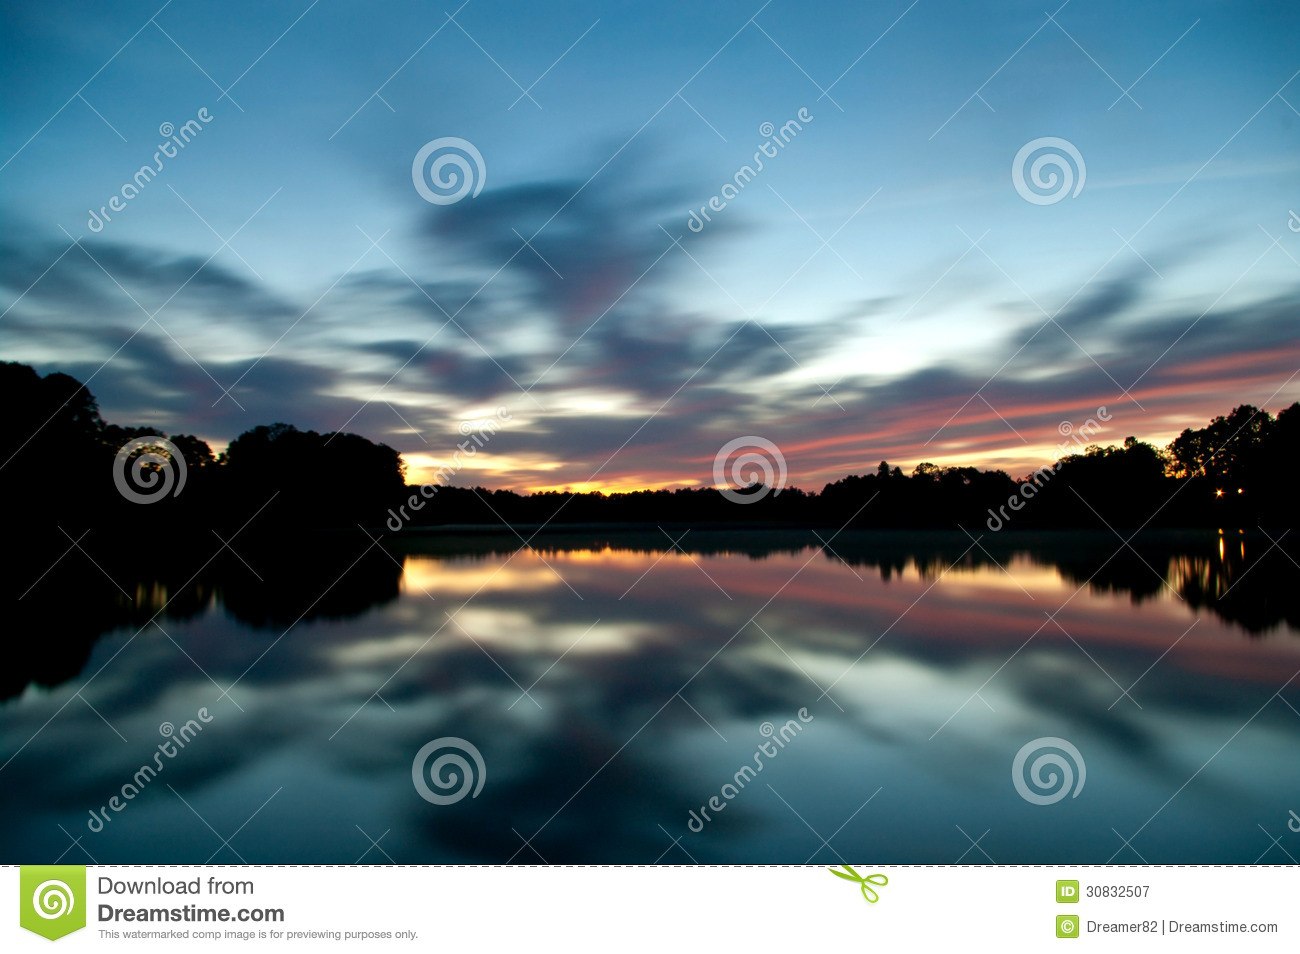 The evening sky reflecting in the water